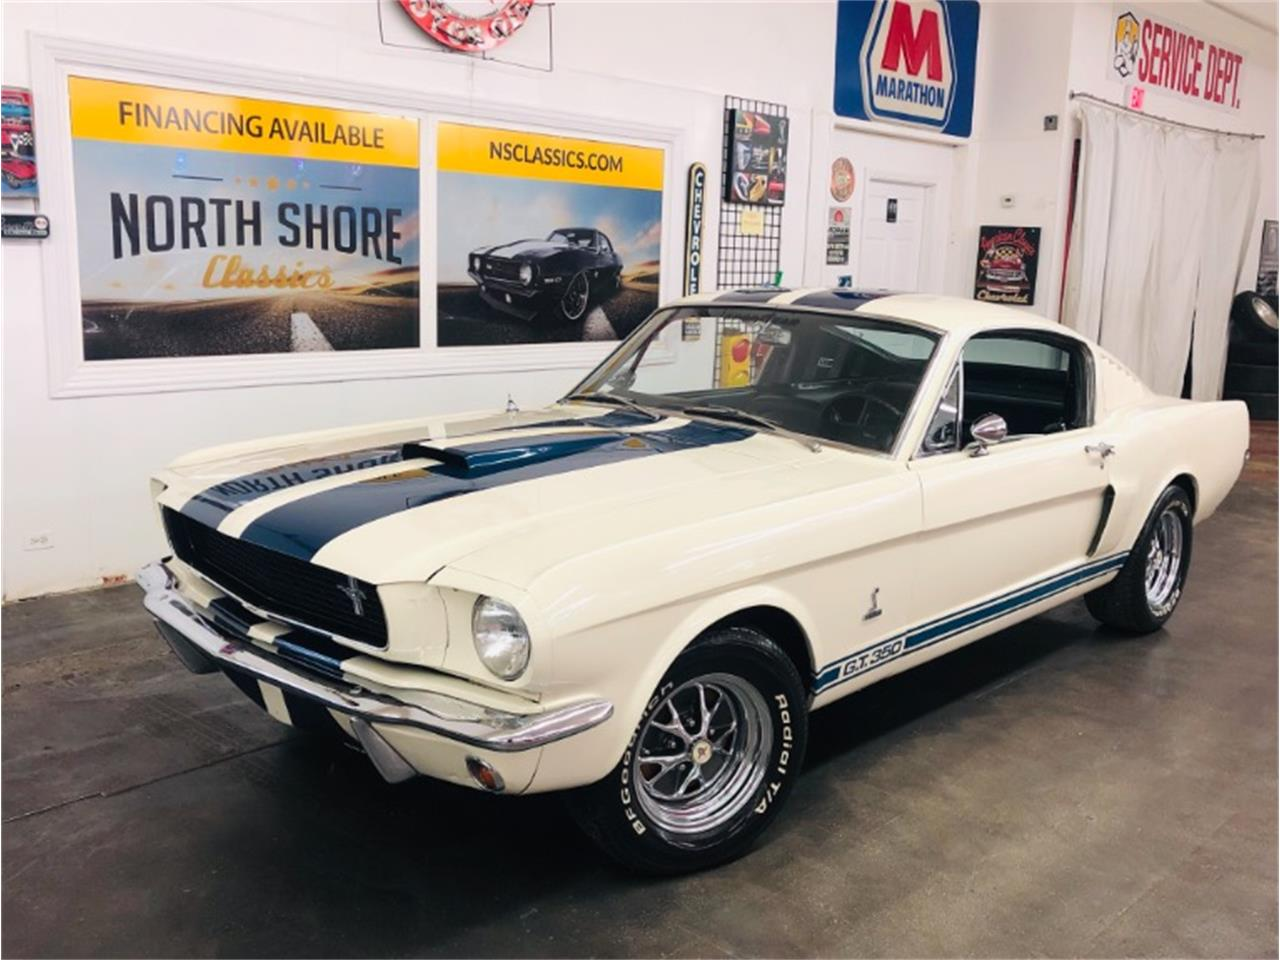 Ford Mustang Fastback 1966 prix tout compris